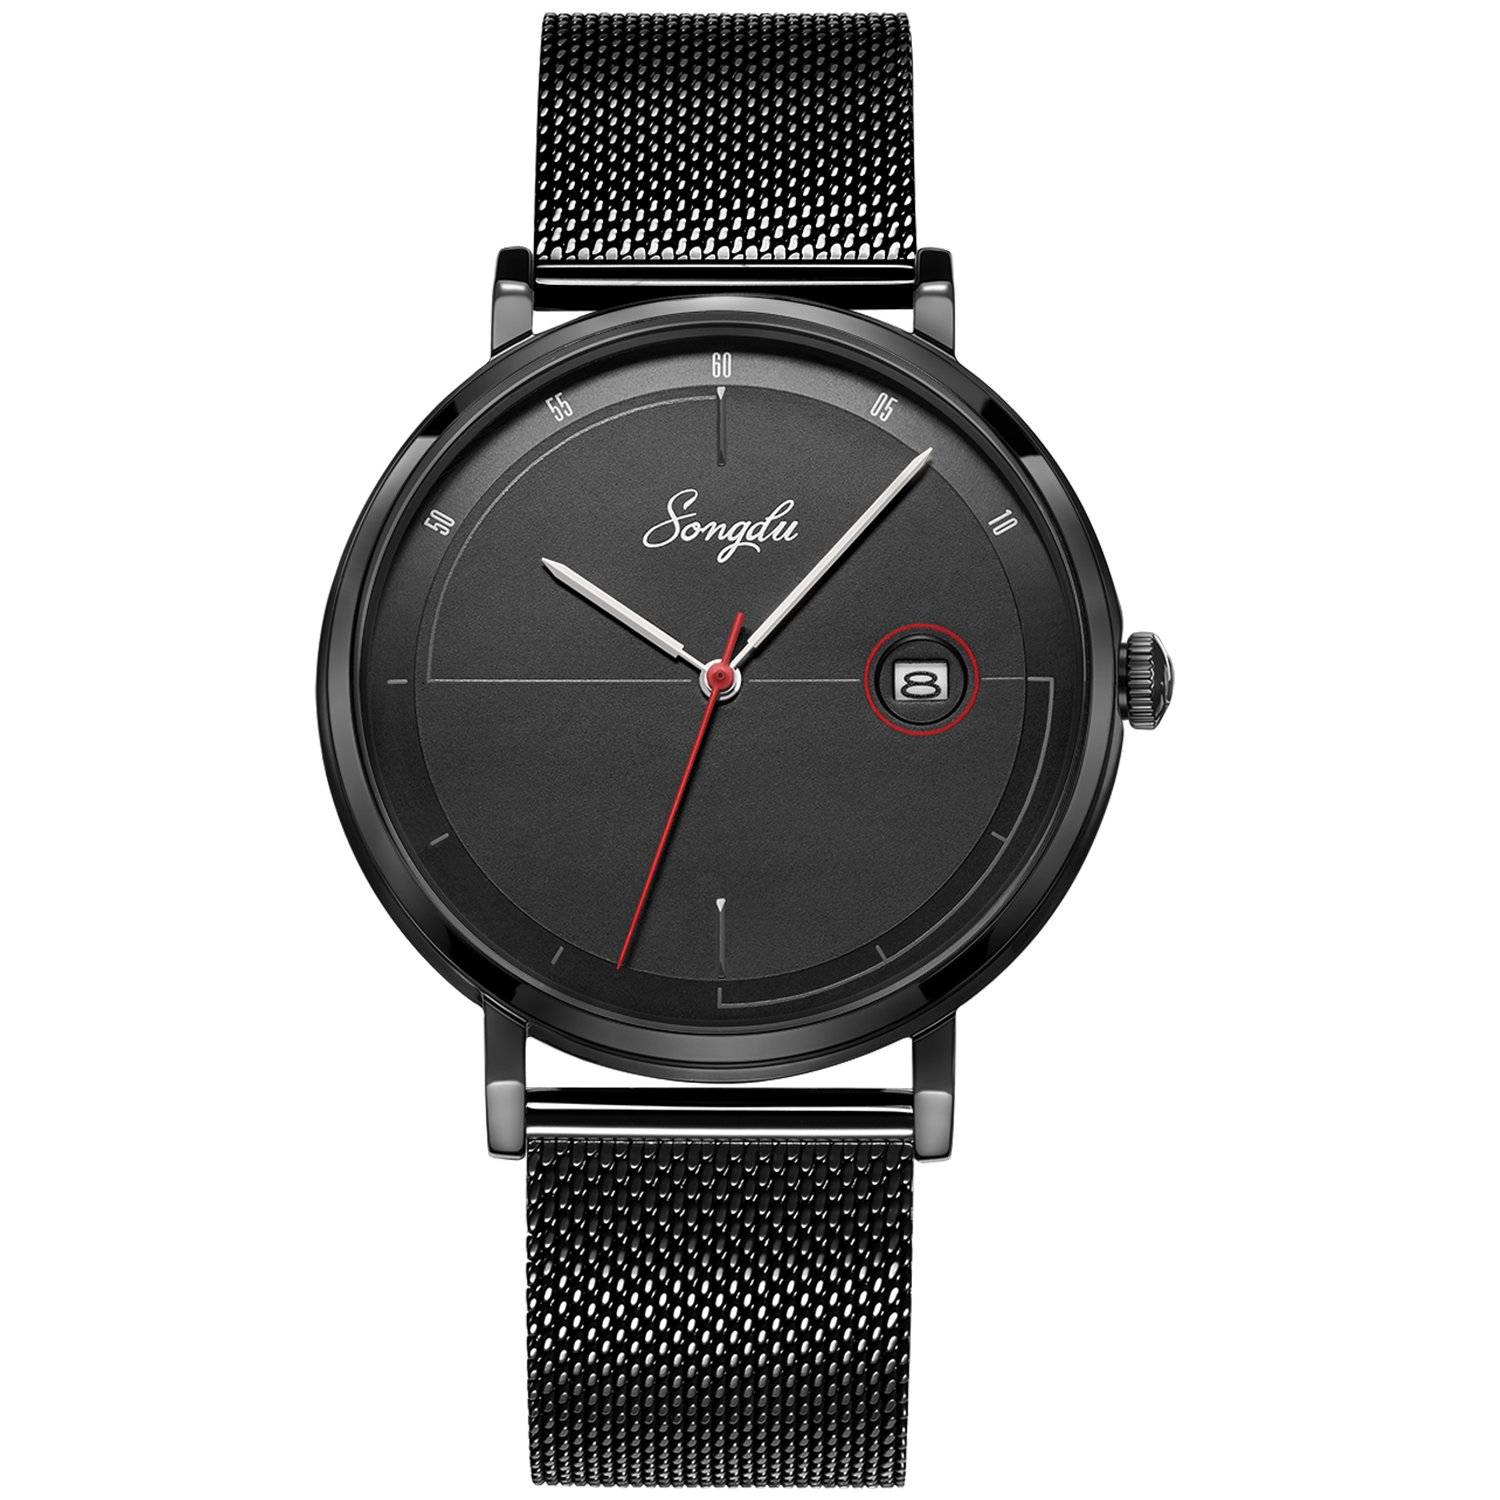 SONGDU Men's Fashion Date Slim Analog Quartz Watches with Stainless Steel Mesh Band (Black)